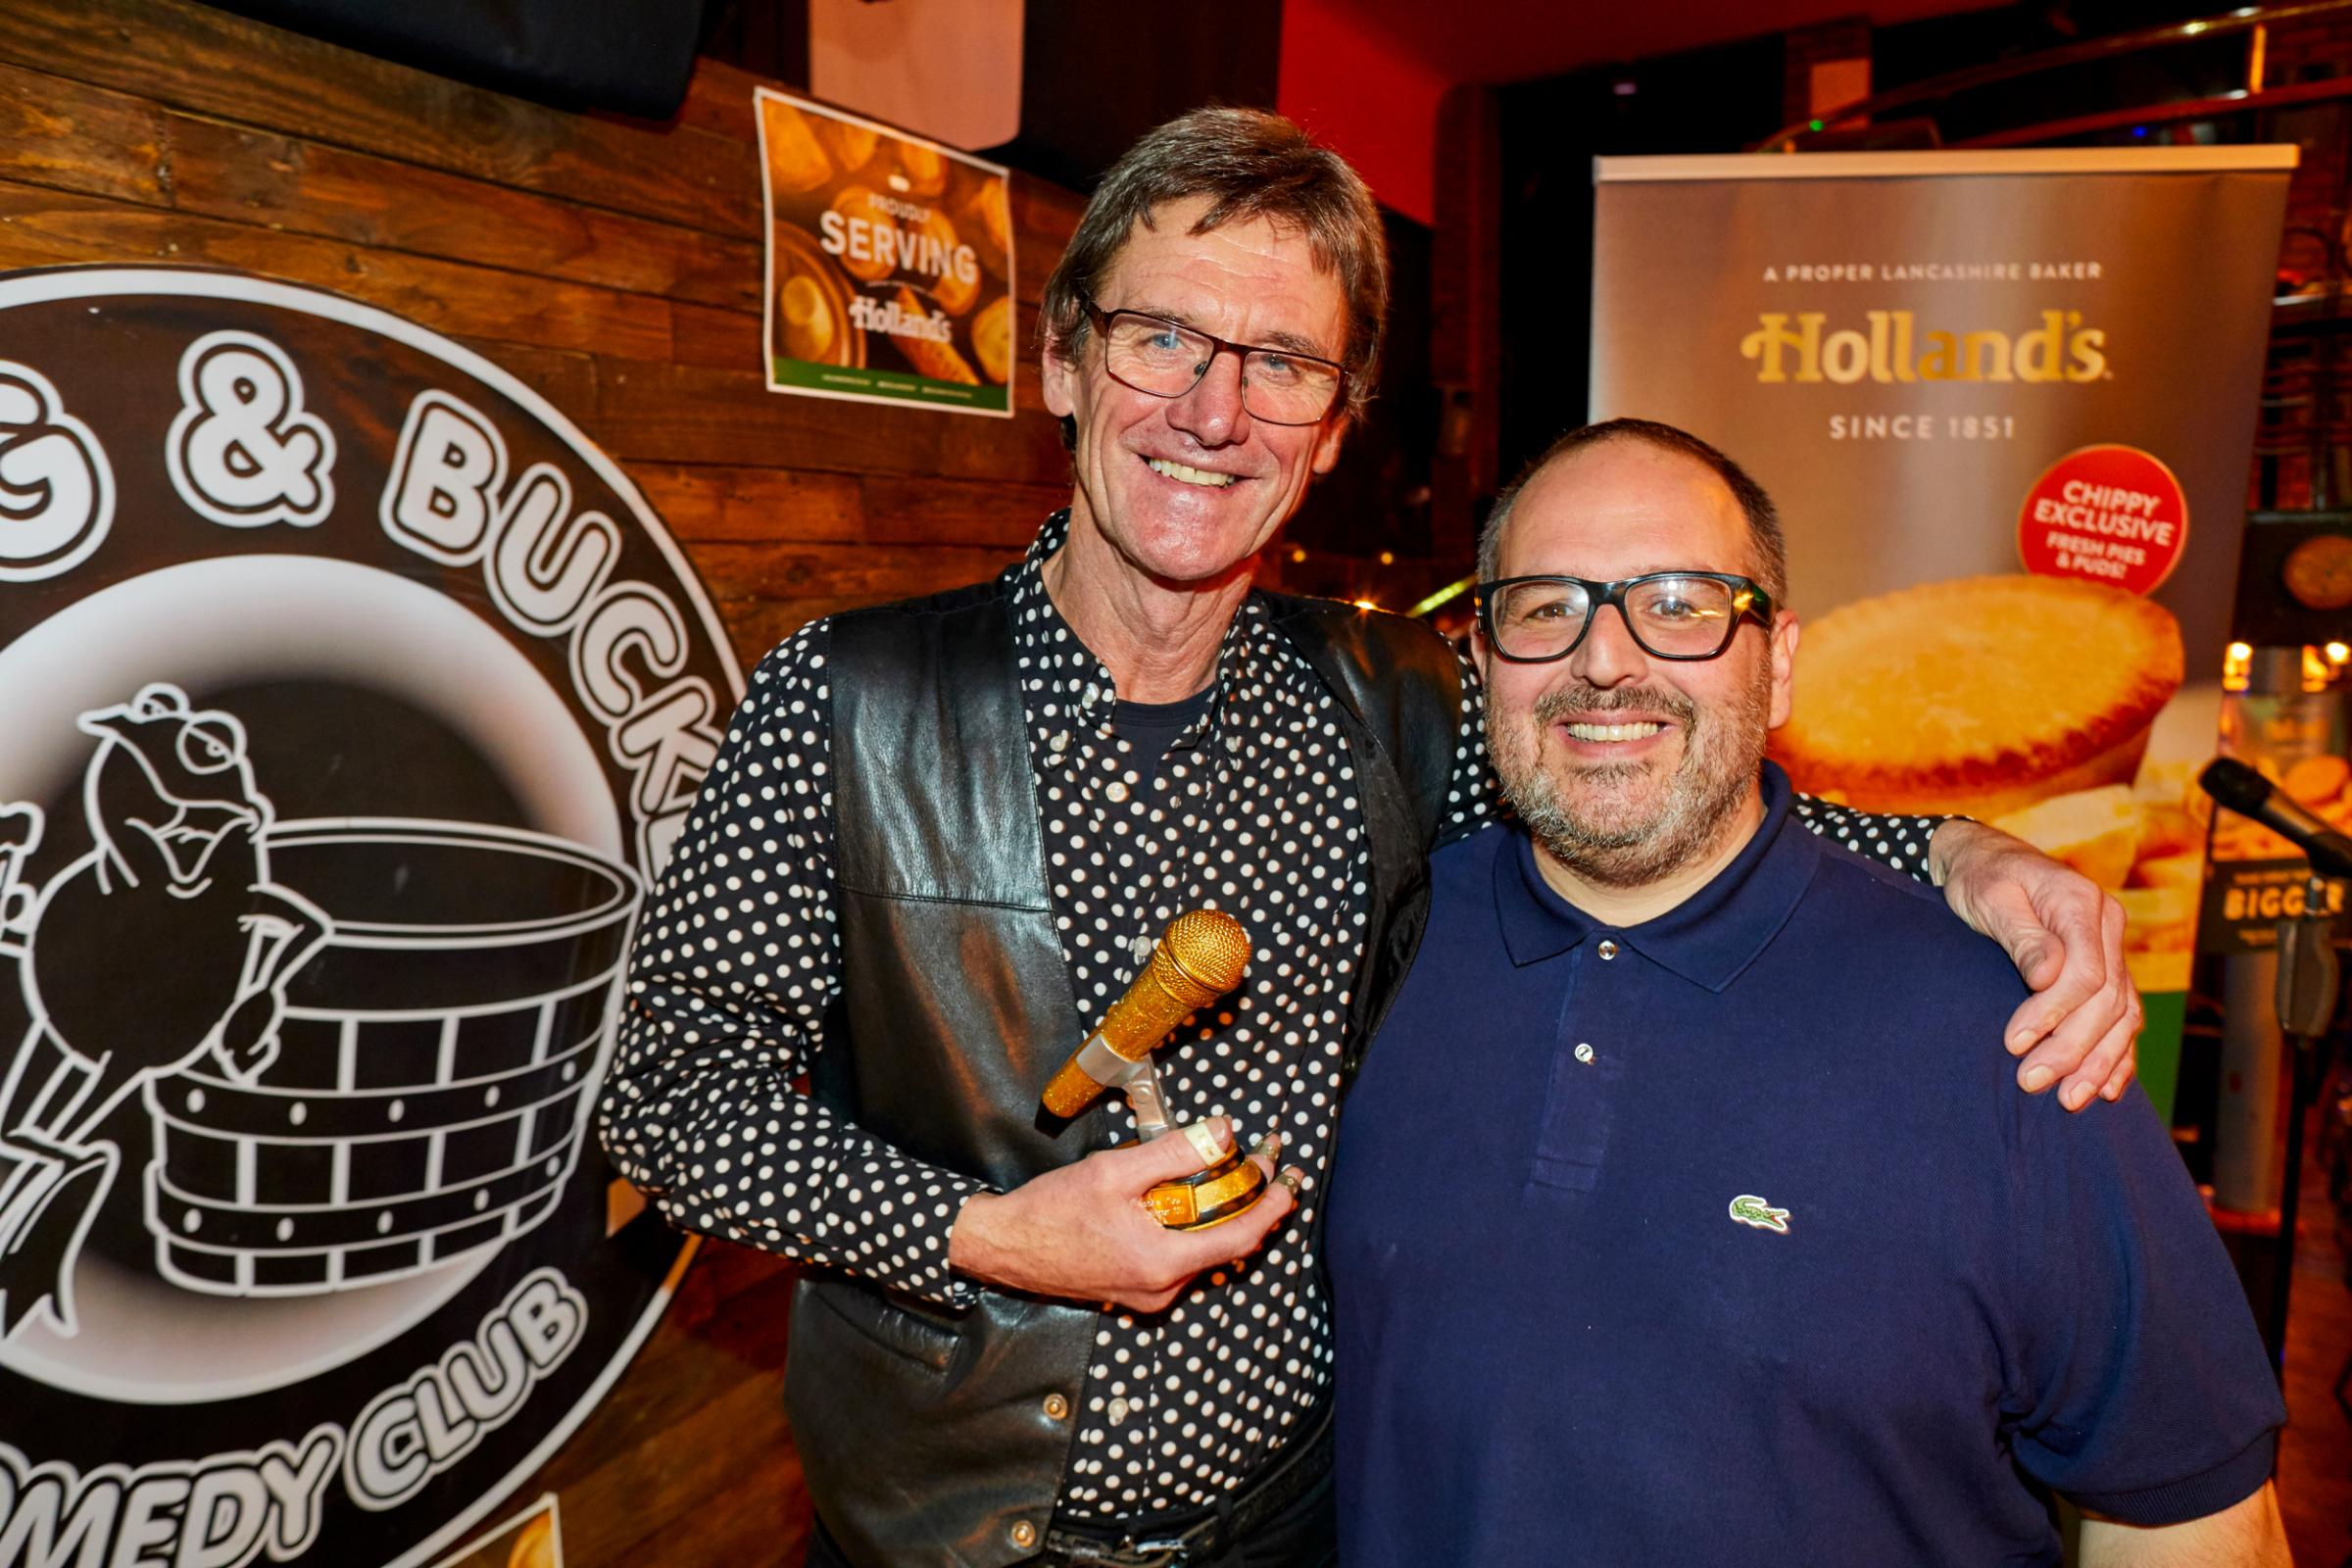 Holland's pies Vanoke final at the Frog and Bucket in Manchester, presented by comedian Justin Moorehouse and won by Jim Berry from Westhaughton